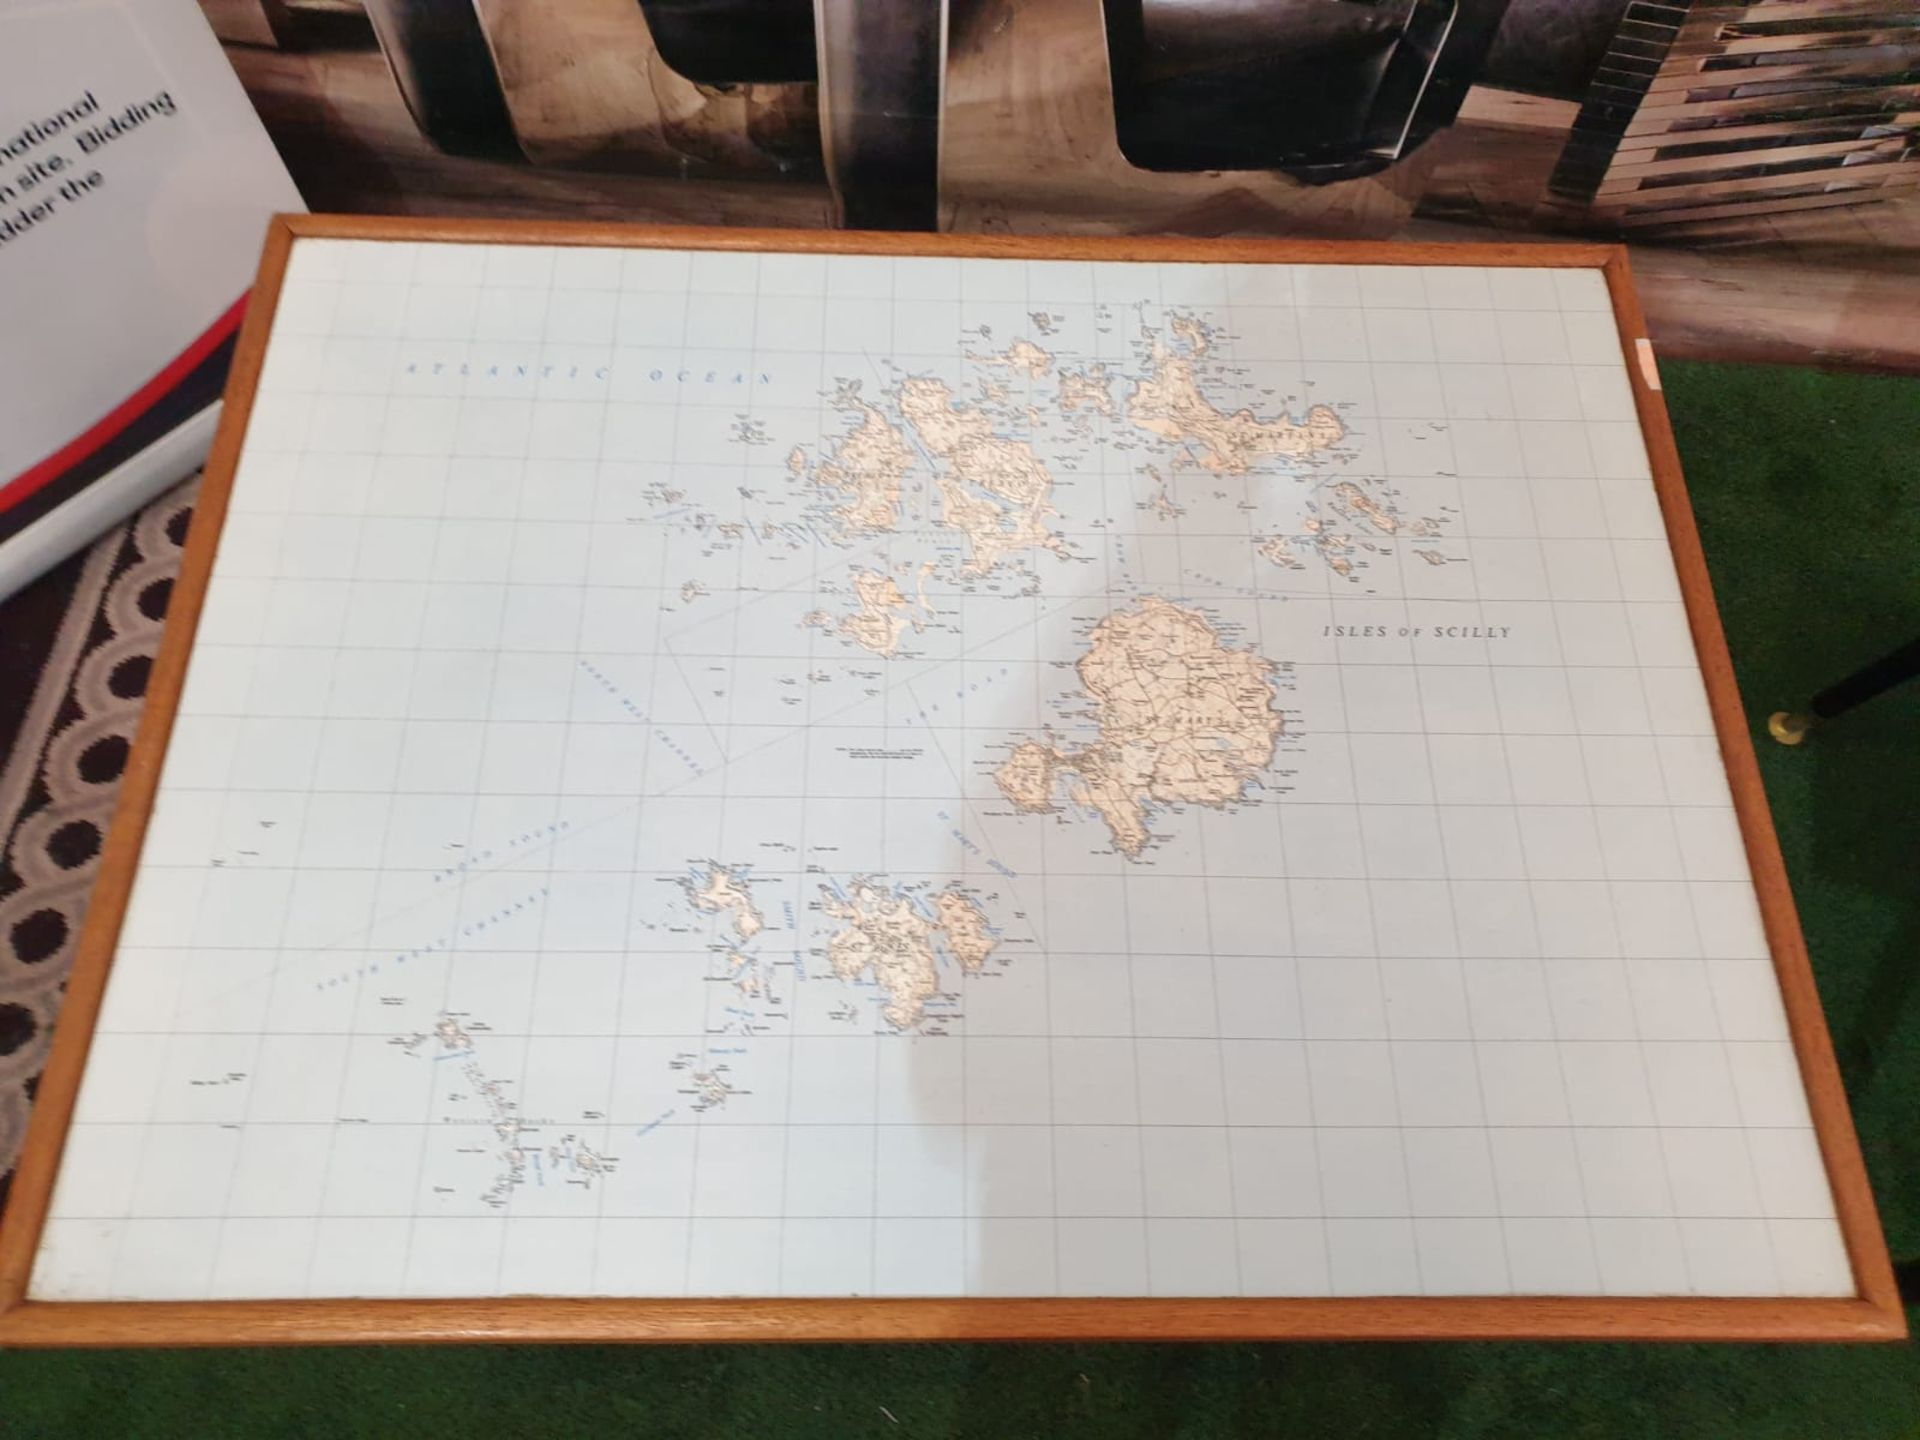 3 x Coffee tables the tops of old school maps of Scilly Isles 82 x 62 x 50cm - Image 3 of 3